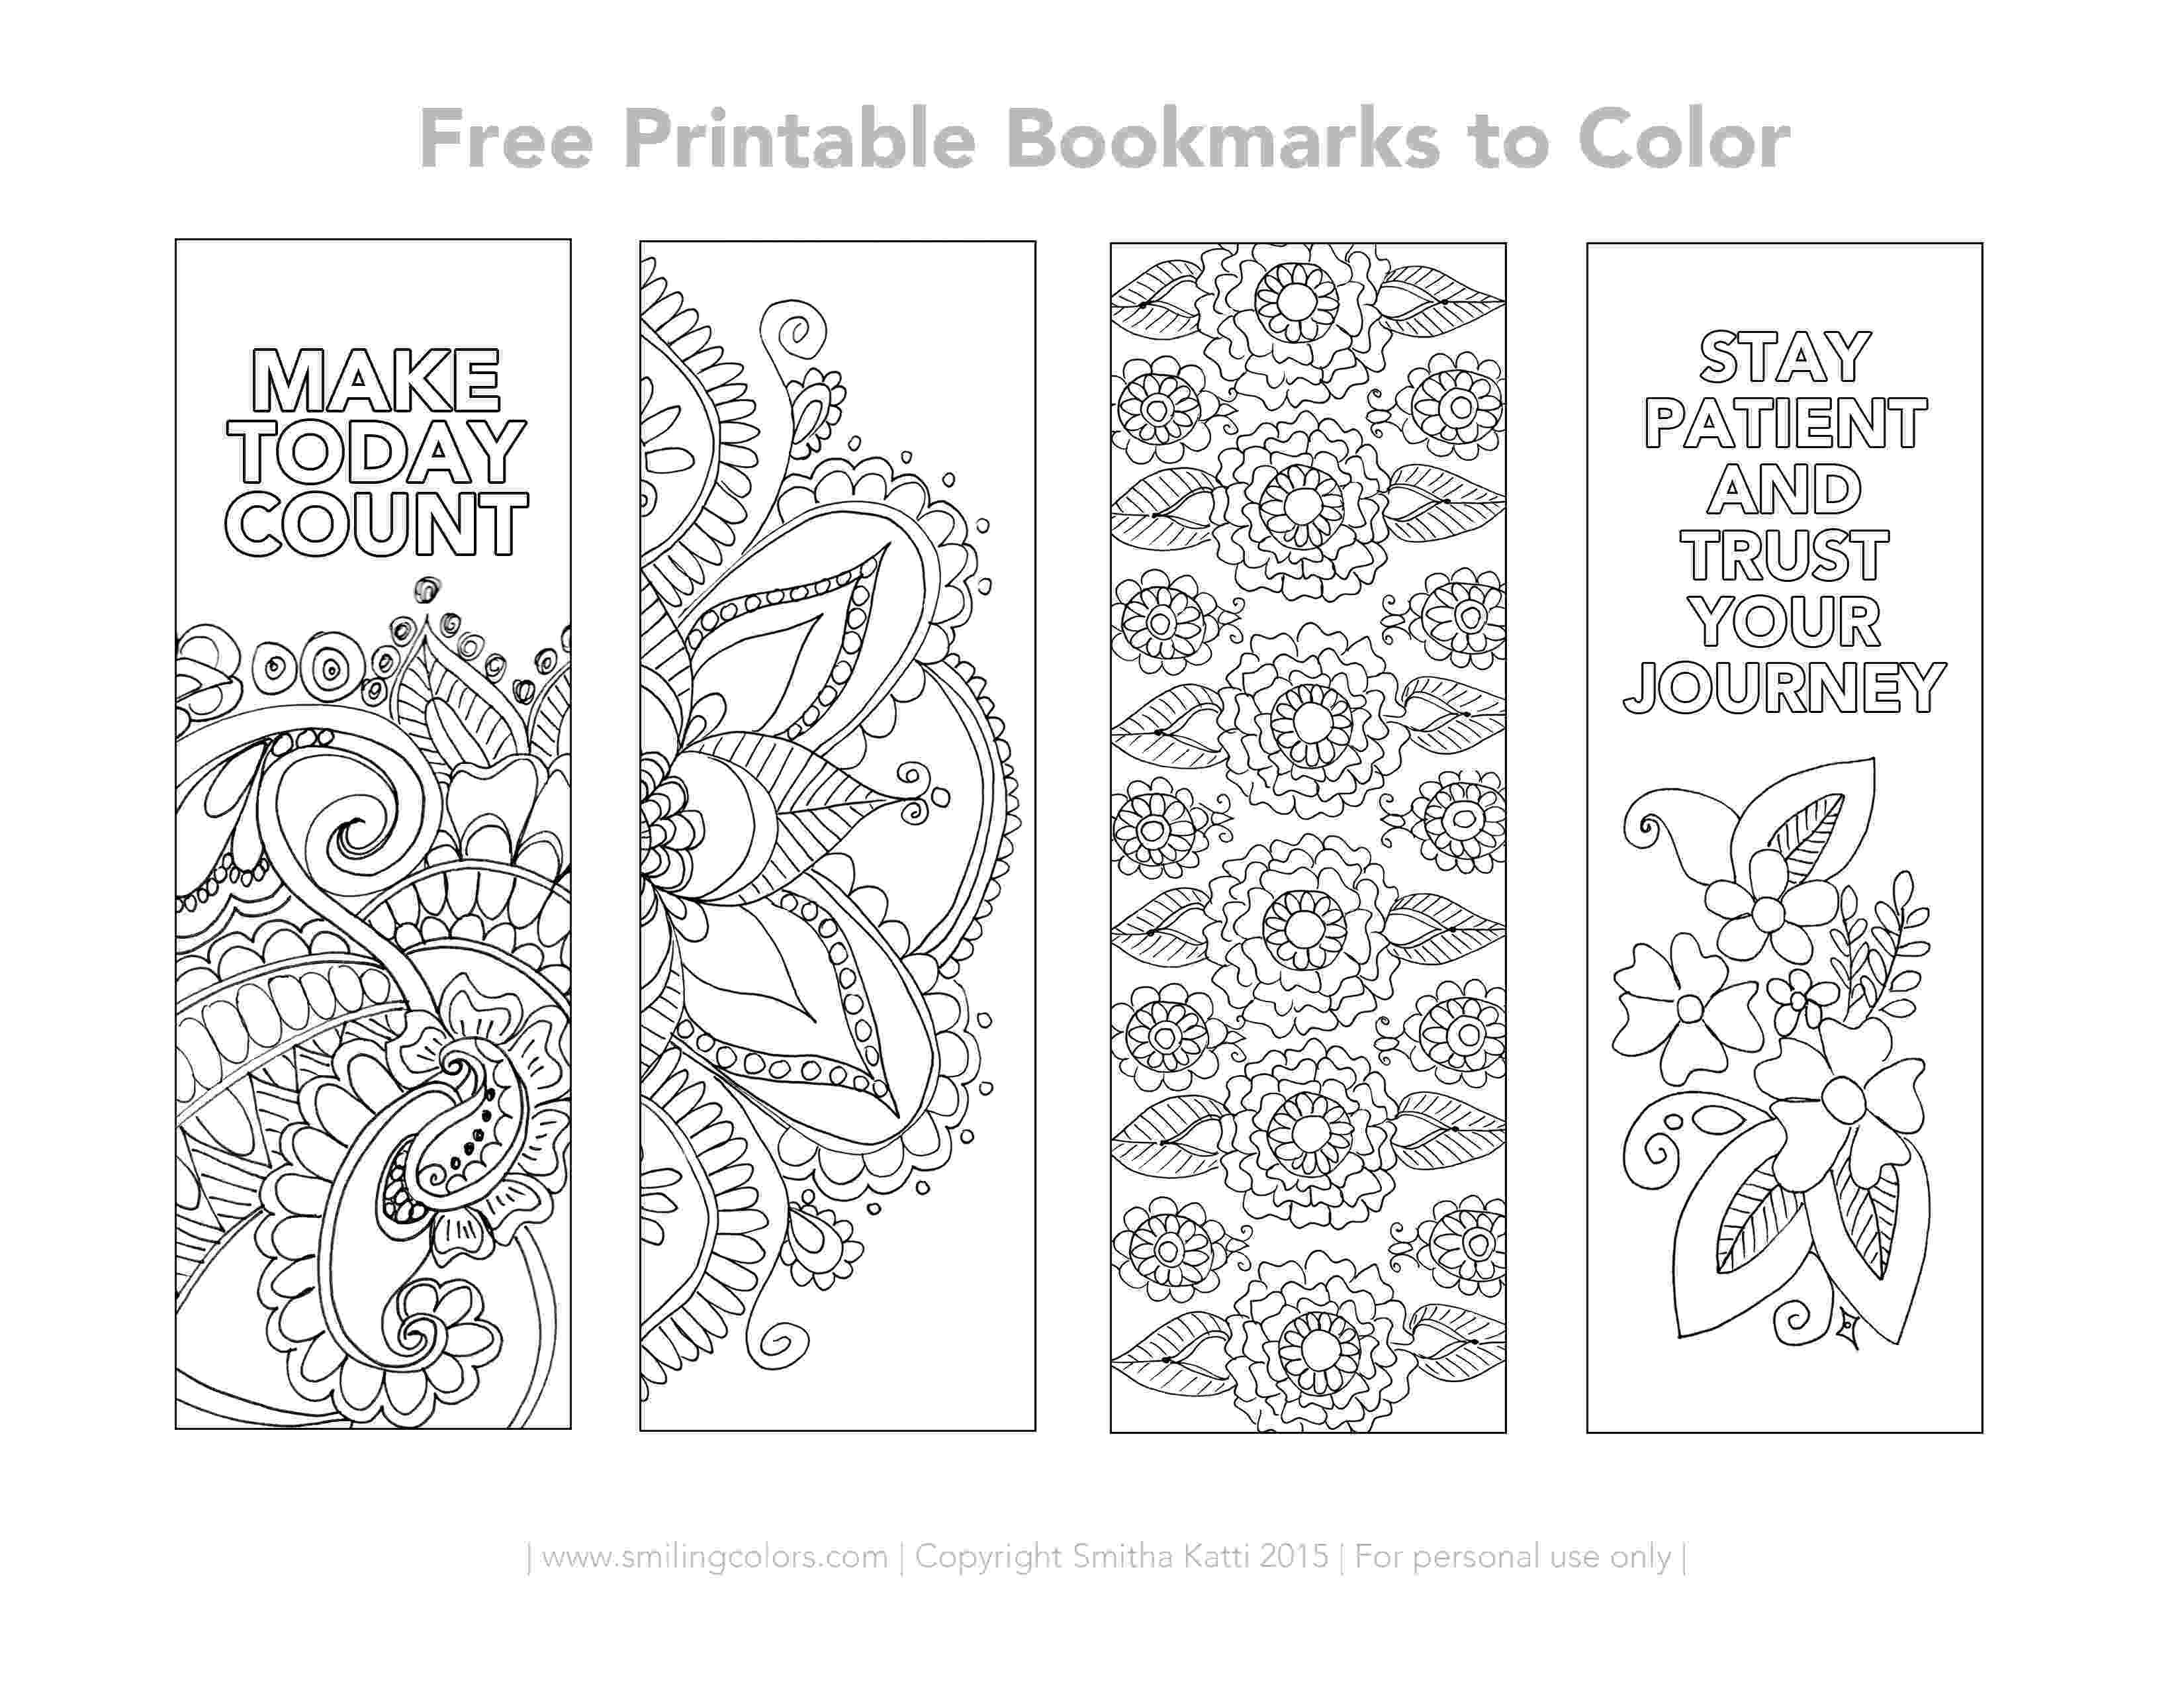 coloring bookmarks thats printable free christmas bookmarks to color cultured palate printable bookmarks thats coloring